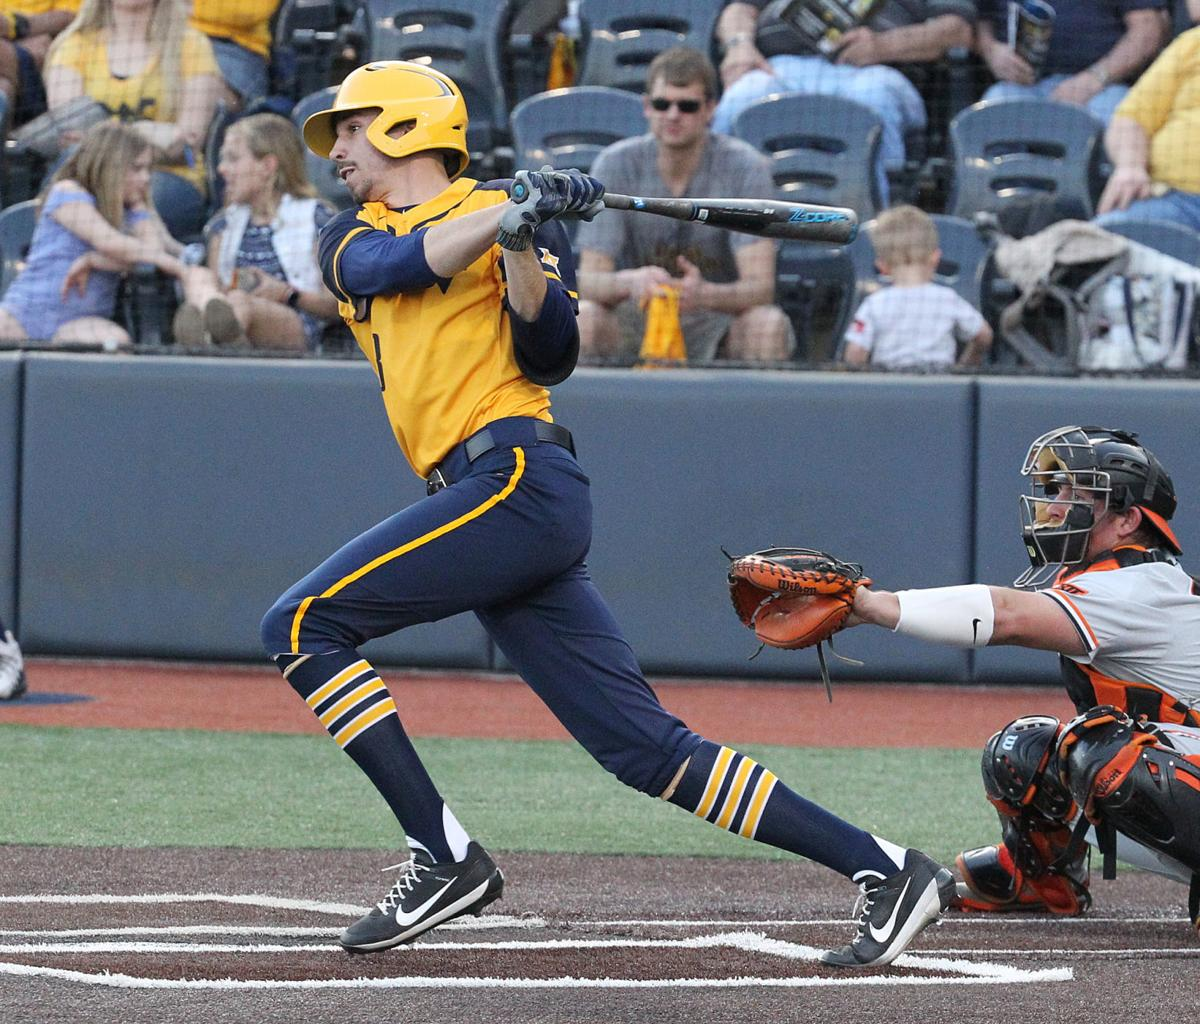 Jimmy Galusky hit a home run Tuesday in WVU's 9-5 win against Maryland.